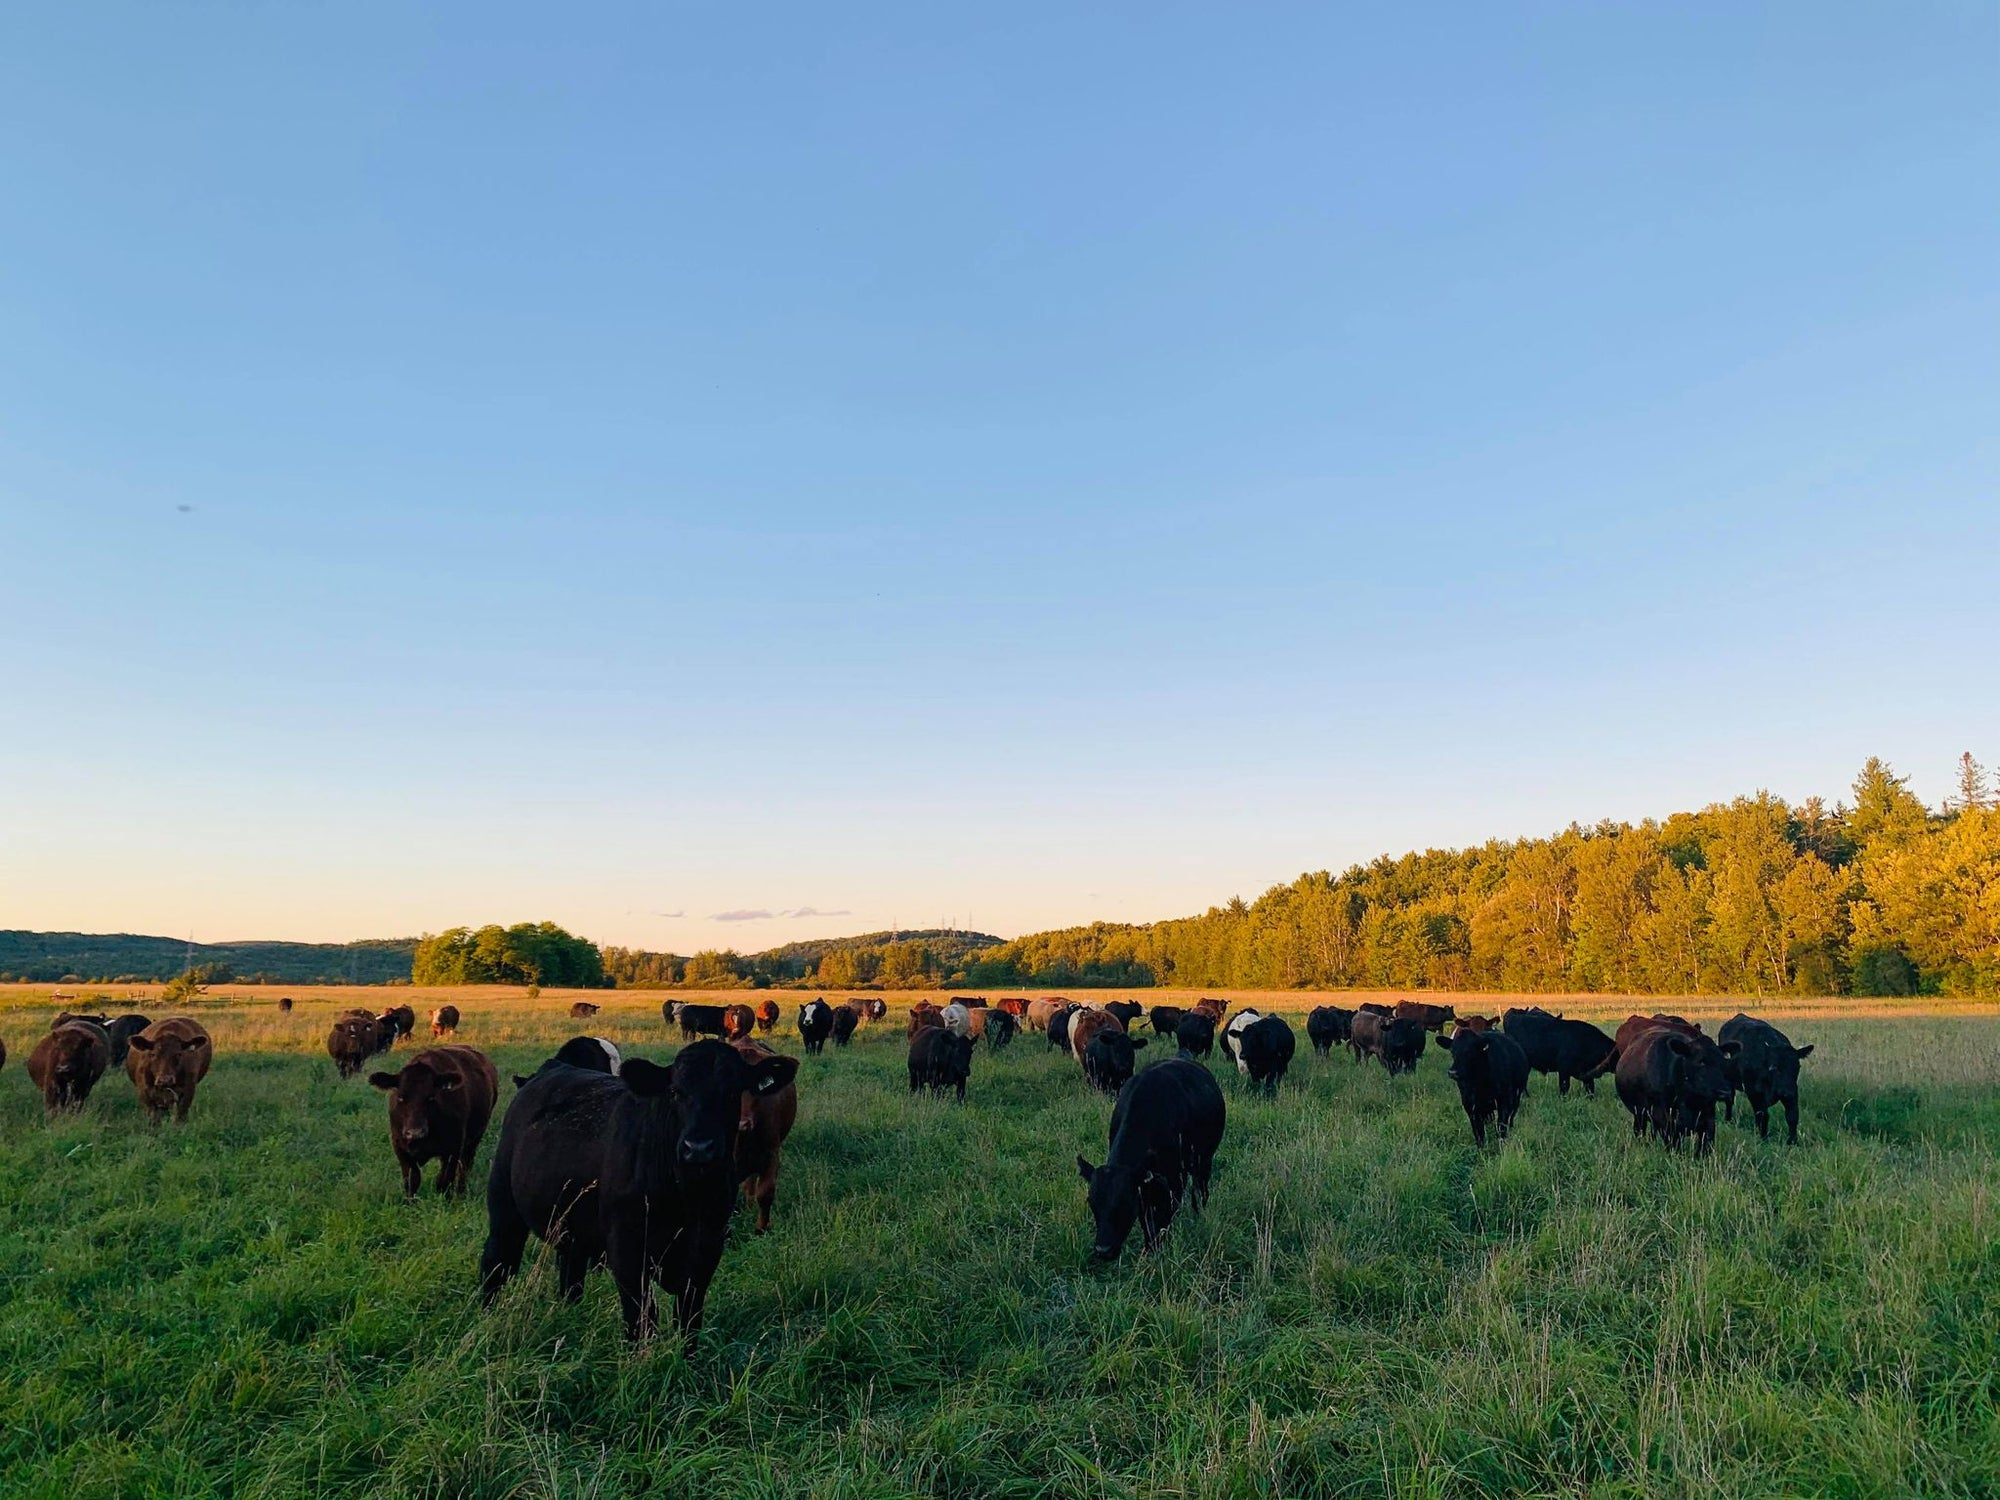 New Cows, Old Tricks: Adaptive Grazing Helps Farmers and Environment